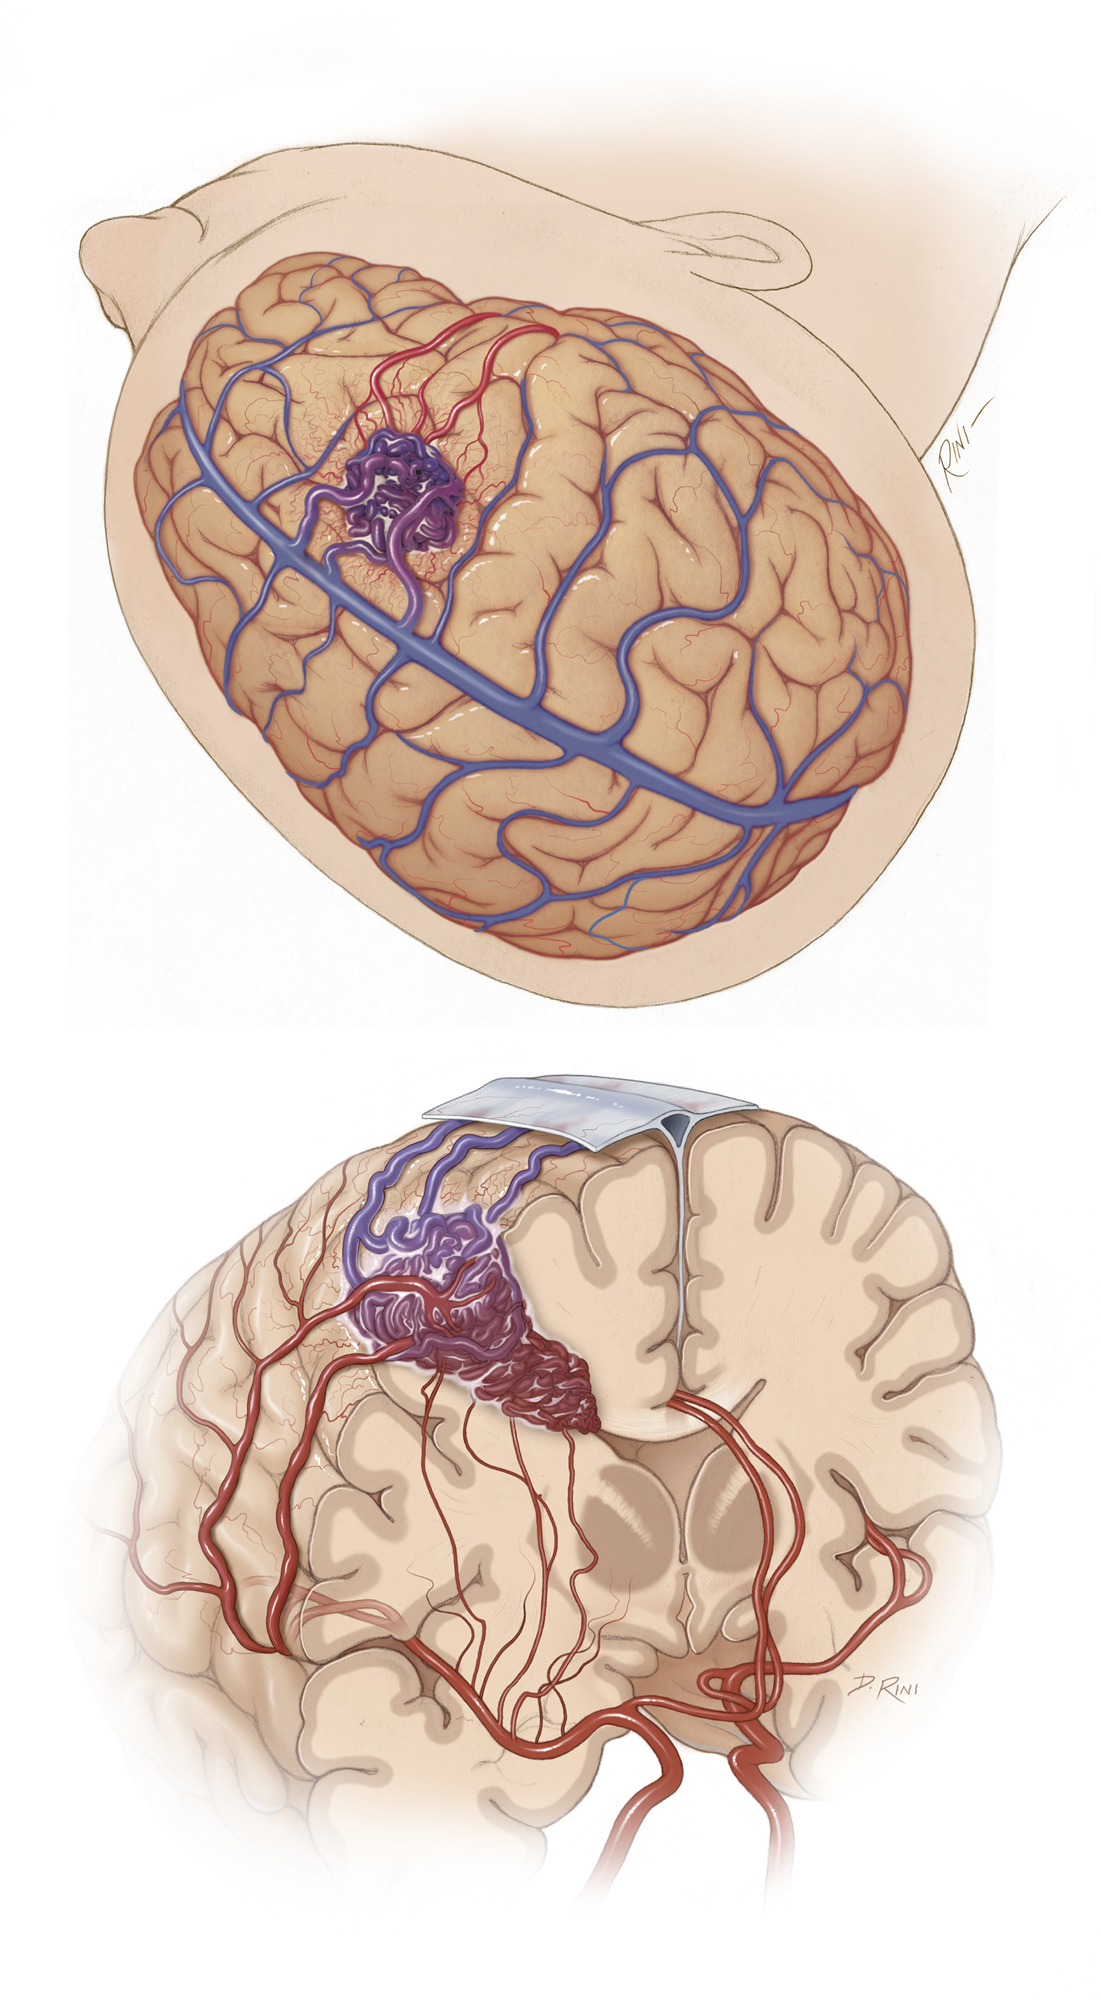 Figure 3: The cortical branches of the superior trunk of the MCA feed most of the lateral frontal AVMs. These branches can be found at the inferior margin of the AVM and are tackled first during circumdissection. Occasionally there may be some feeders arising from the ACA, depending on the complexity of the nidus and its proximity to the midline. Large lesions harbor feeders from the lateral lenticulostriate branches of the MCA that supply the medial and inferior walls of the AVM. These branches are the most difficult to control and can be secured when the dissection continues within the deep white matter. The venous drainage system is superficial and joins the superior sagittal sinus (mainly) or the superficial Sylvian veins.